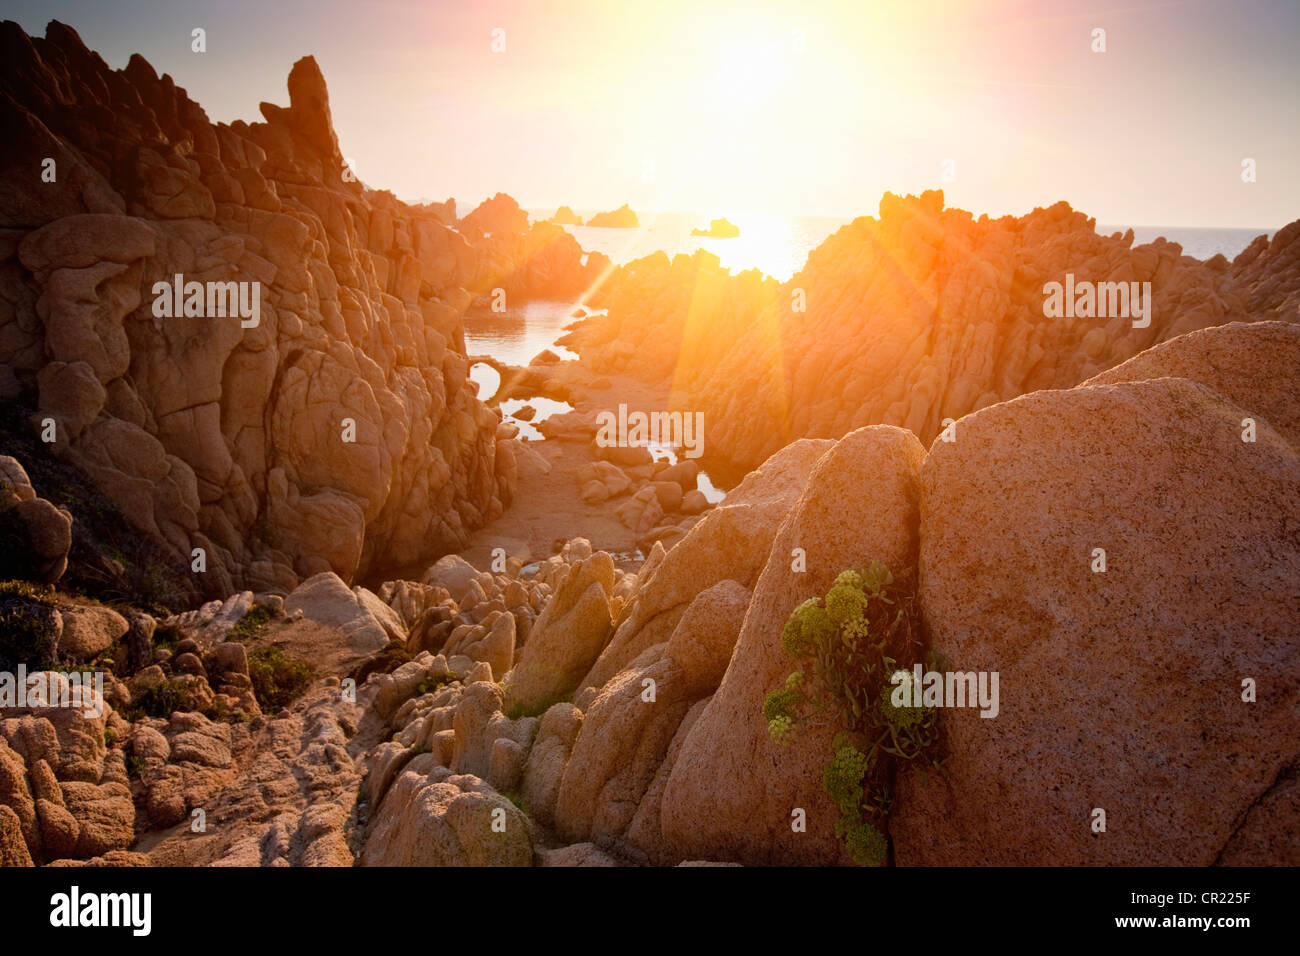 Sun shining through rock formations - Stock Image